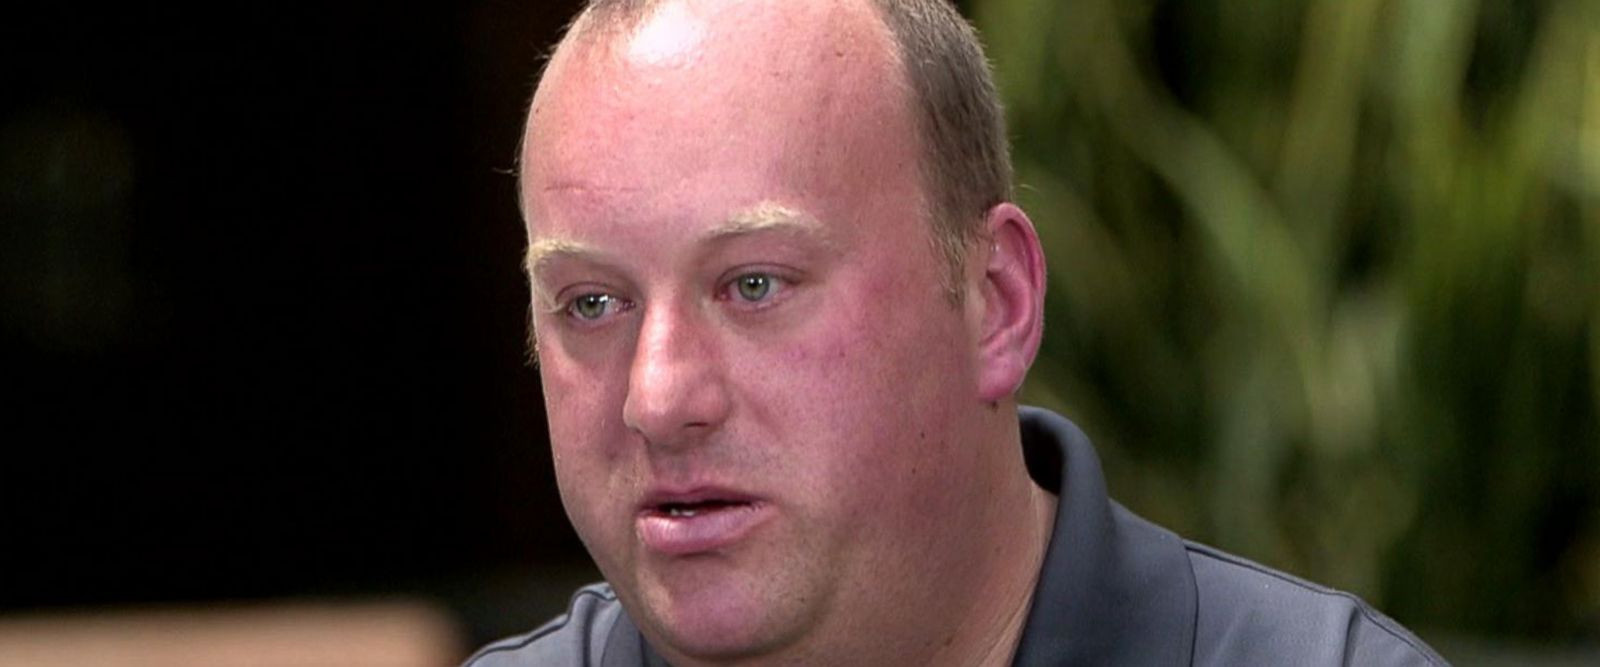 VIDEO: Former Boy Scout alleges years of abuse from troop leader